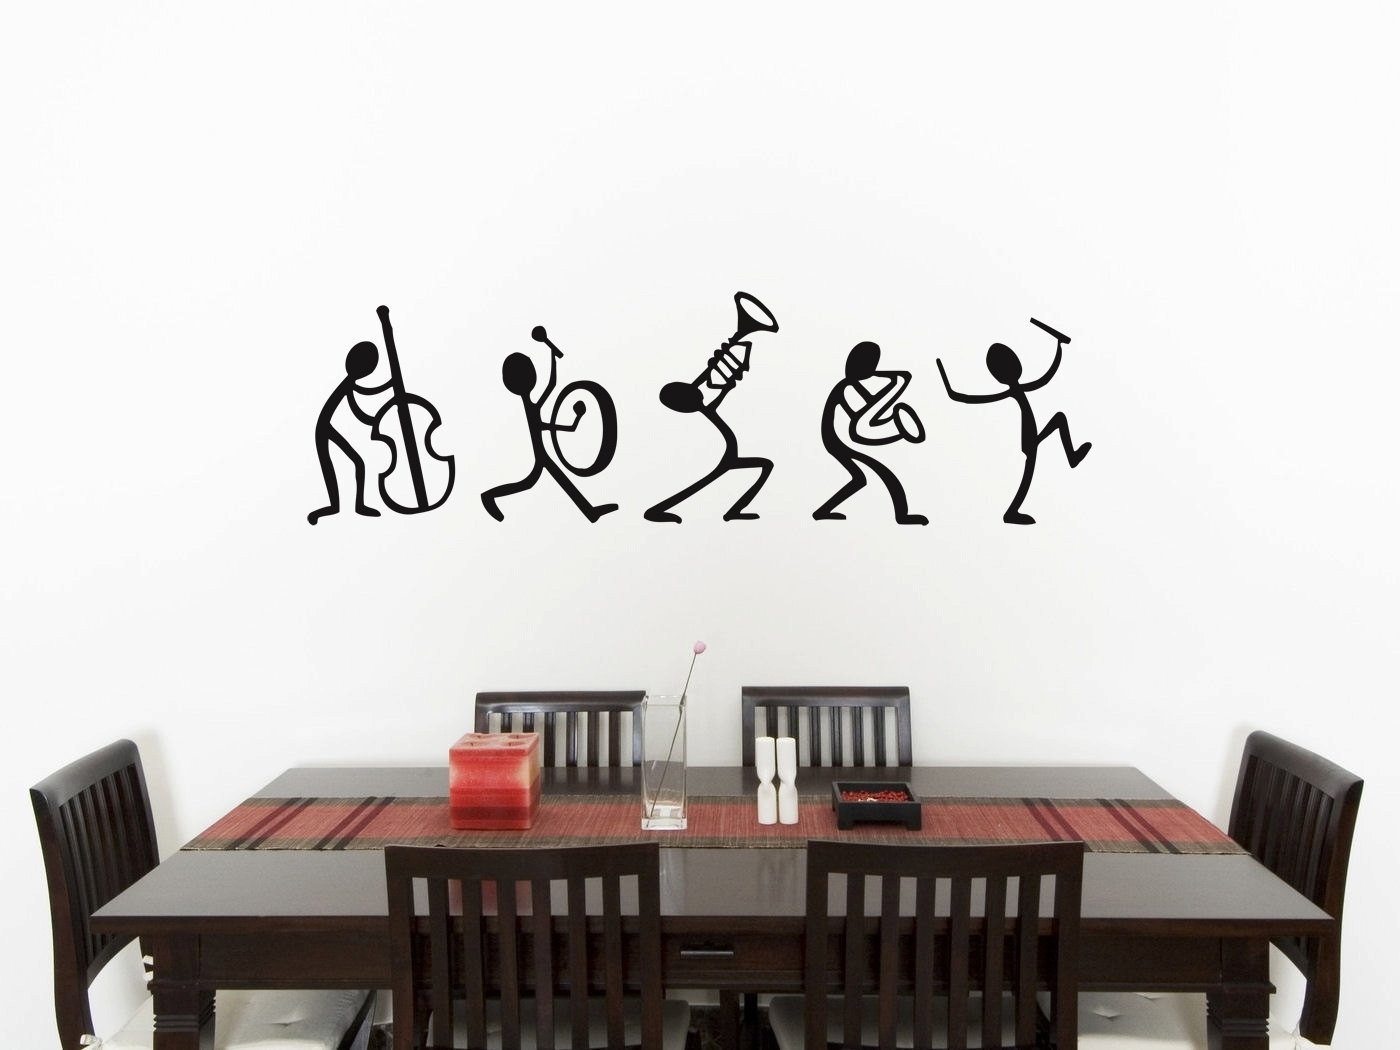 Amazing Men Bedroom Wall Art Music Stick Man Sticker Picture Decal with Bedroom Wall Art (Image 4 of 20)